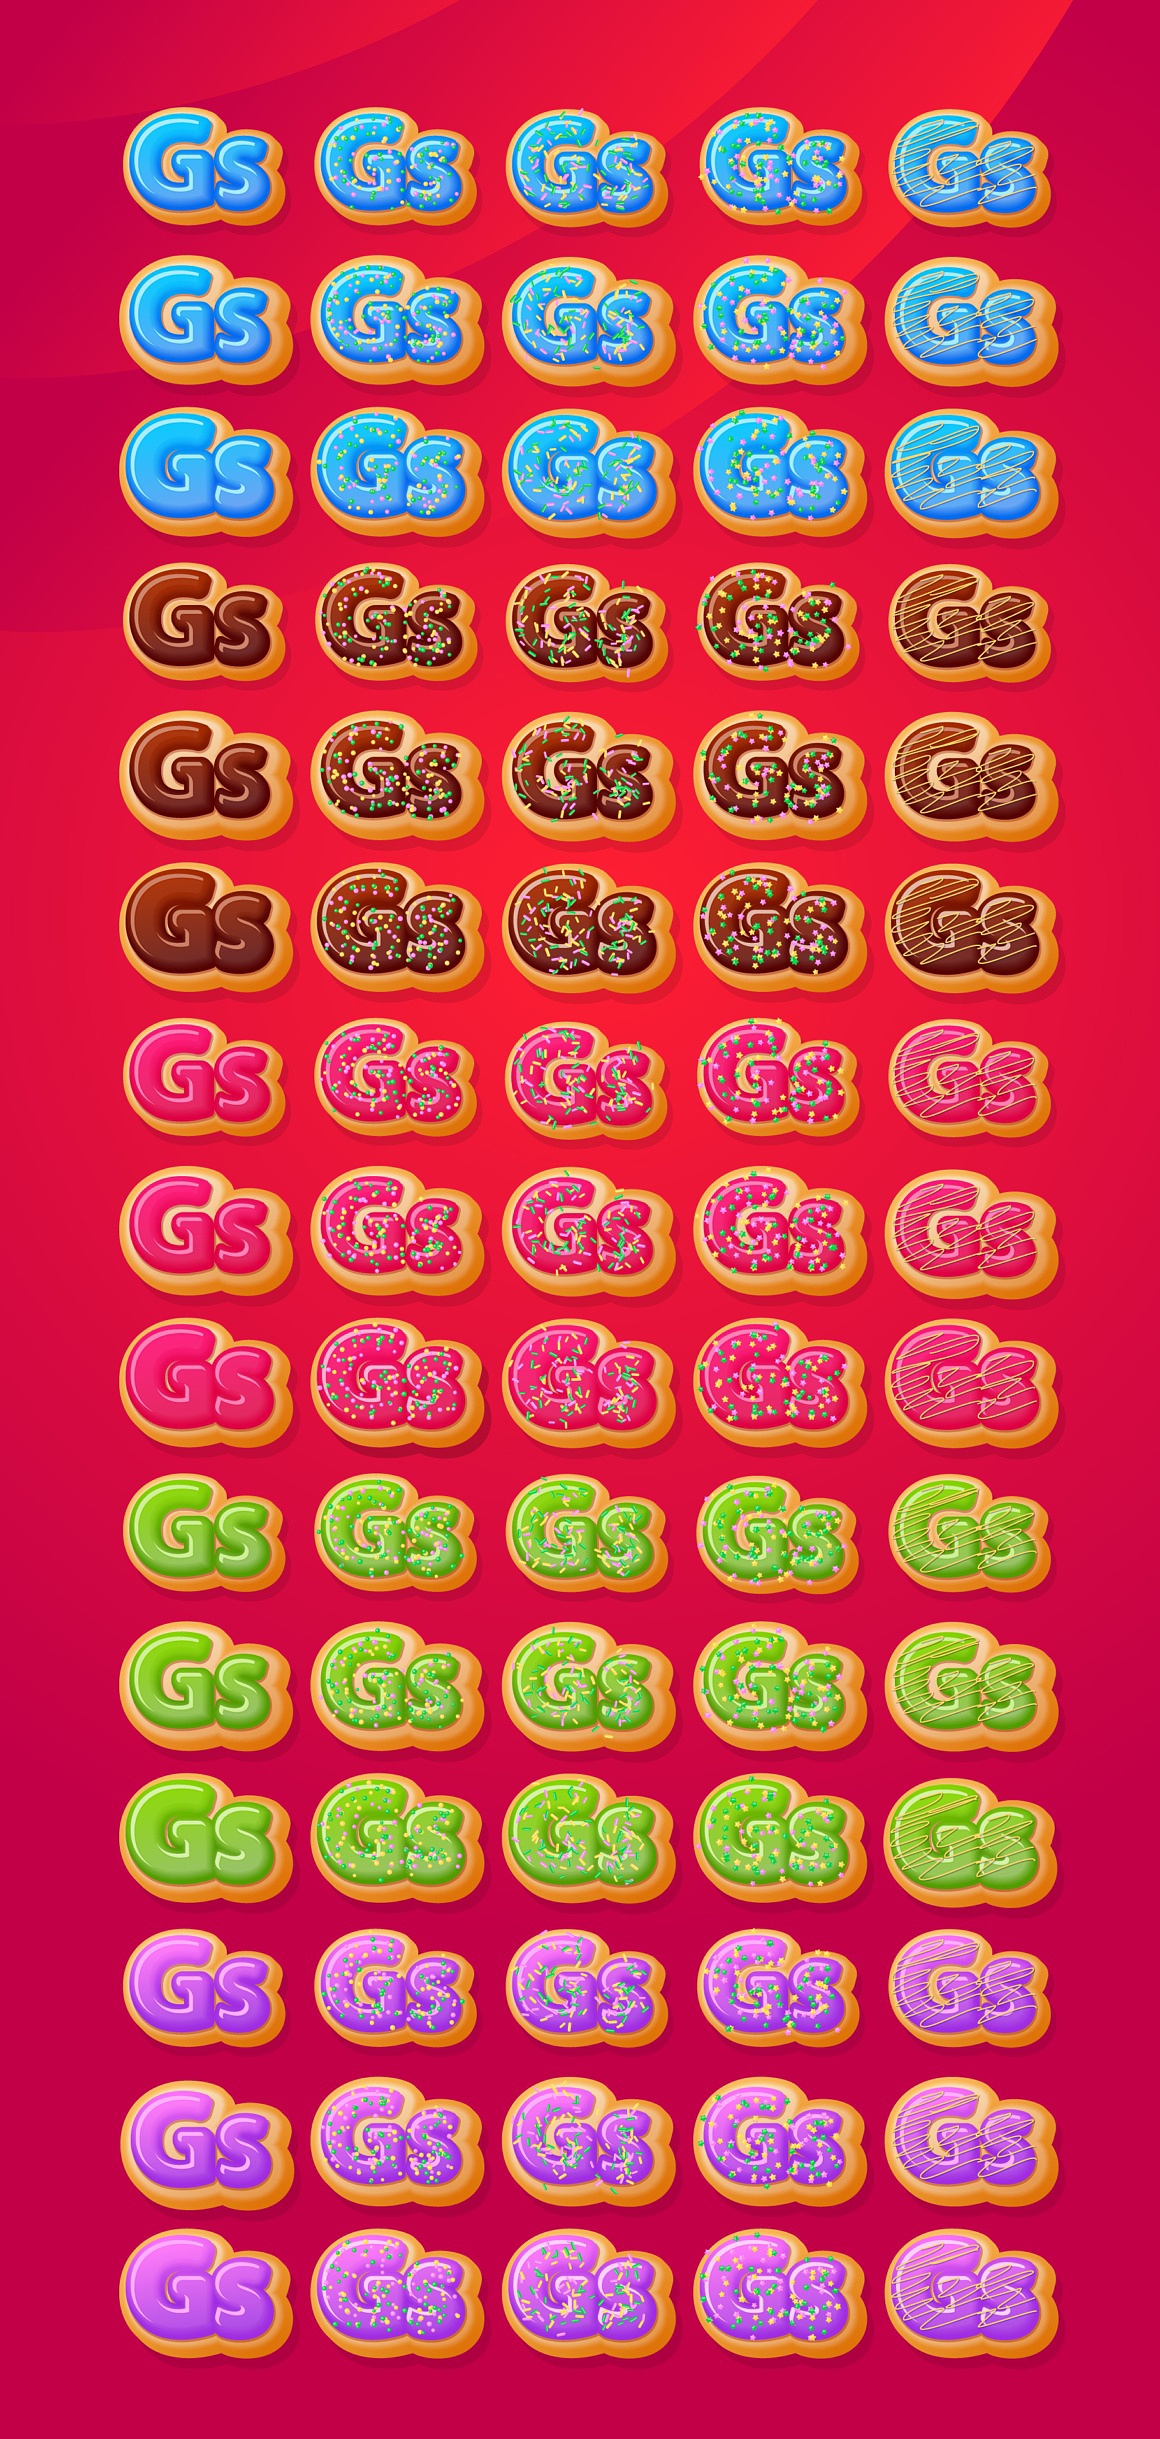 Donuts Adobe Illustrator Graphic style images/donuts_2_styles.jpg